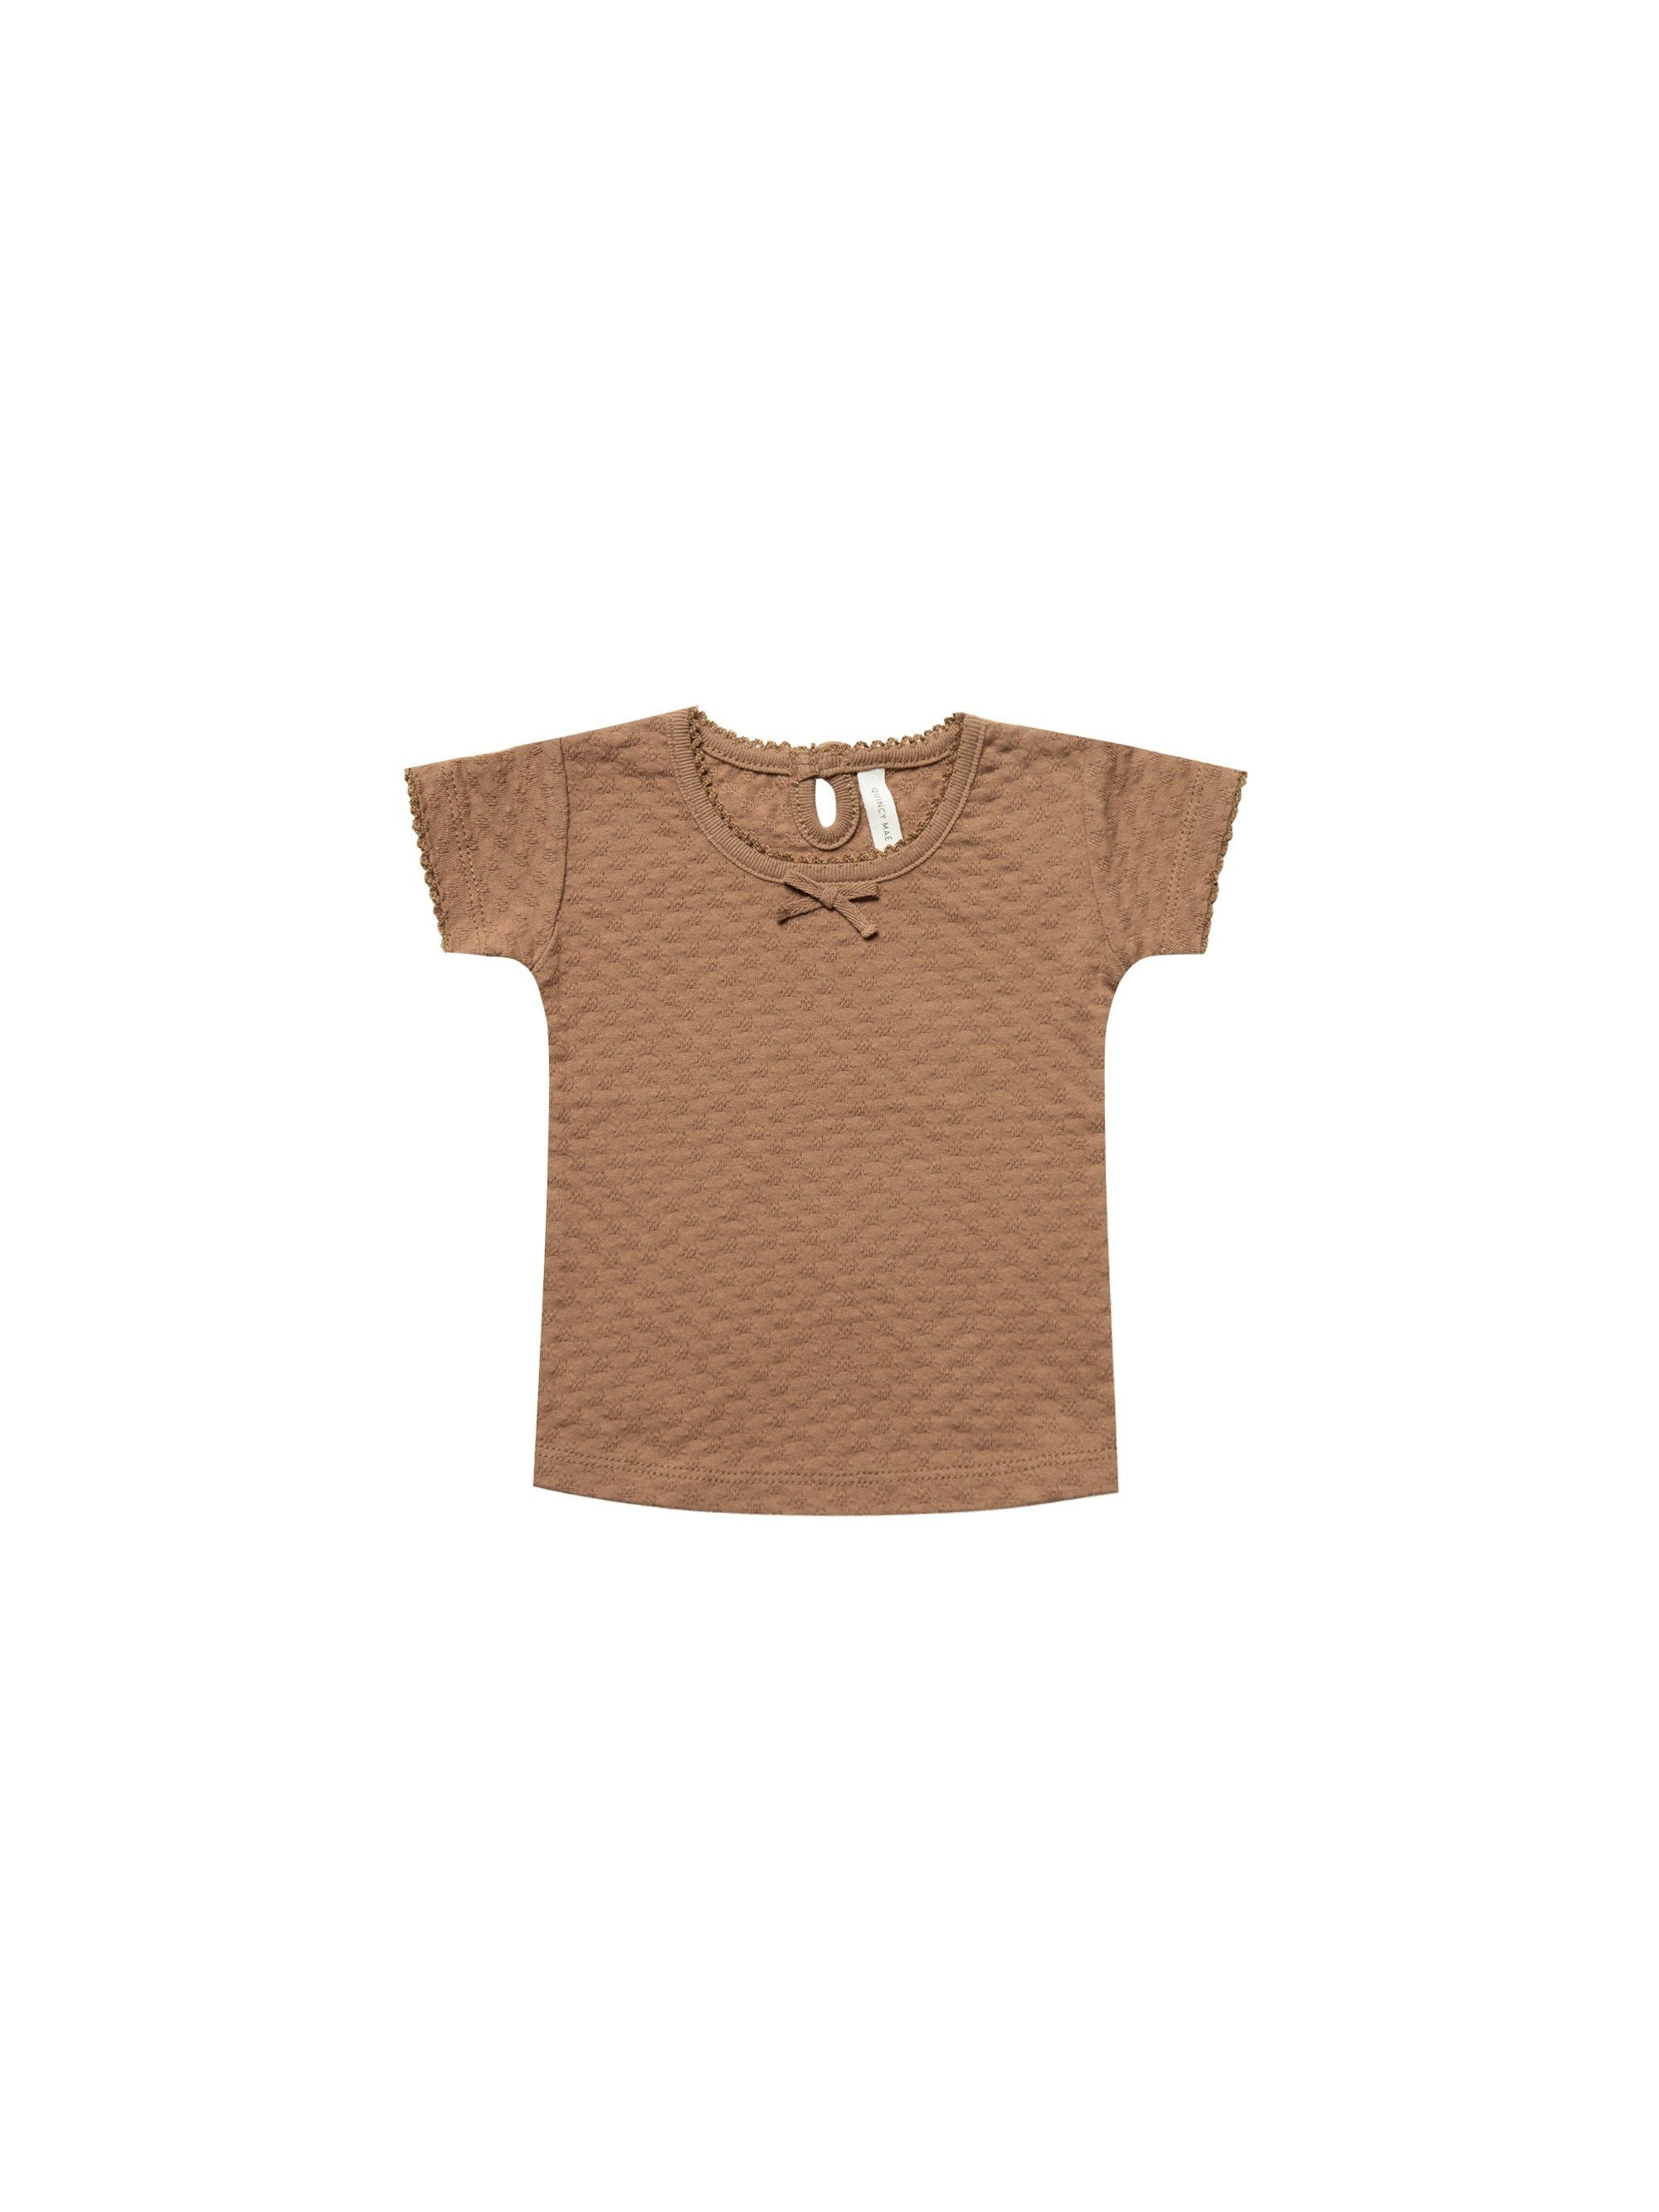 Quincy Mae Organic Pointelle Baby Tee, Copper